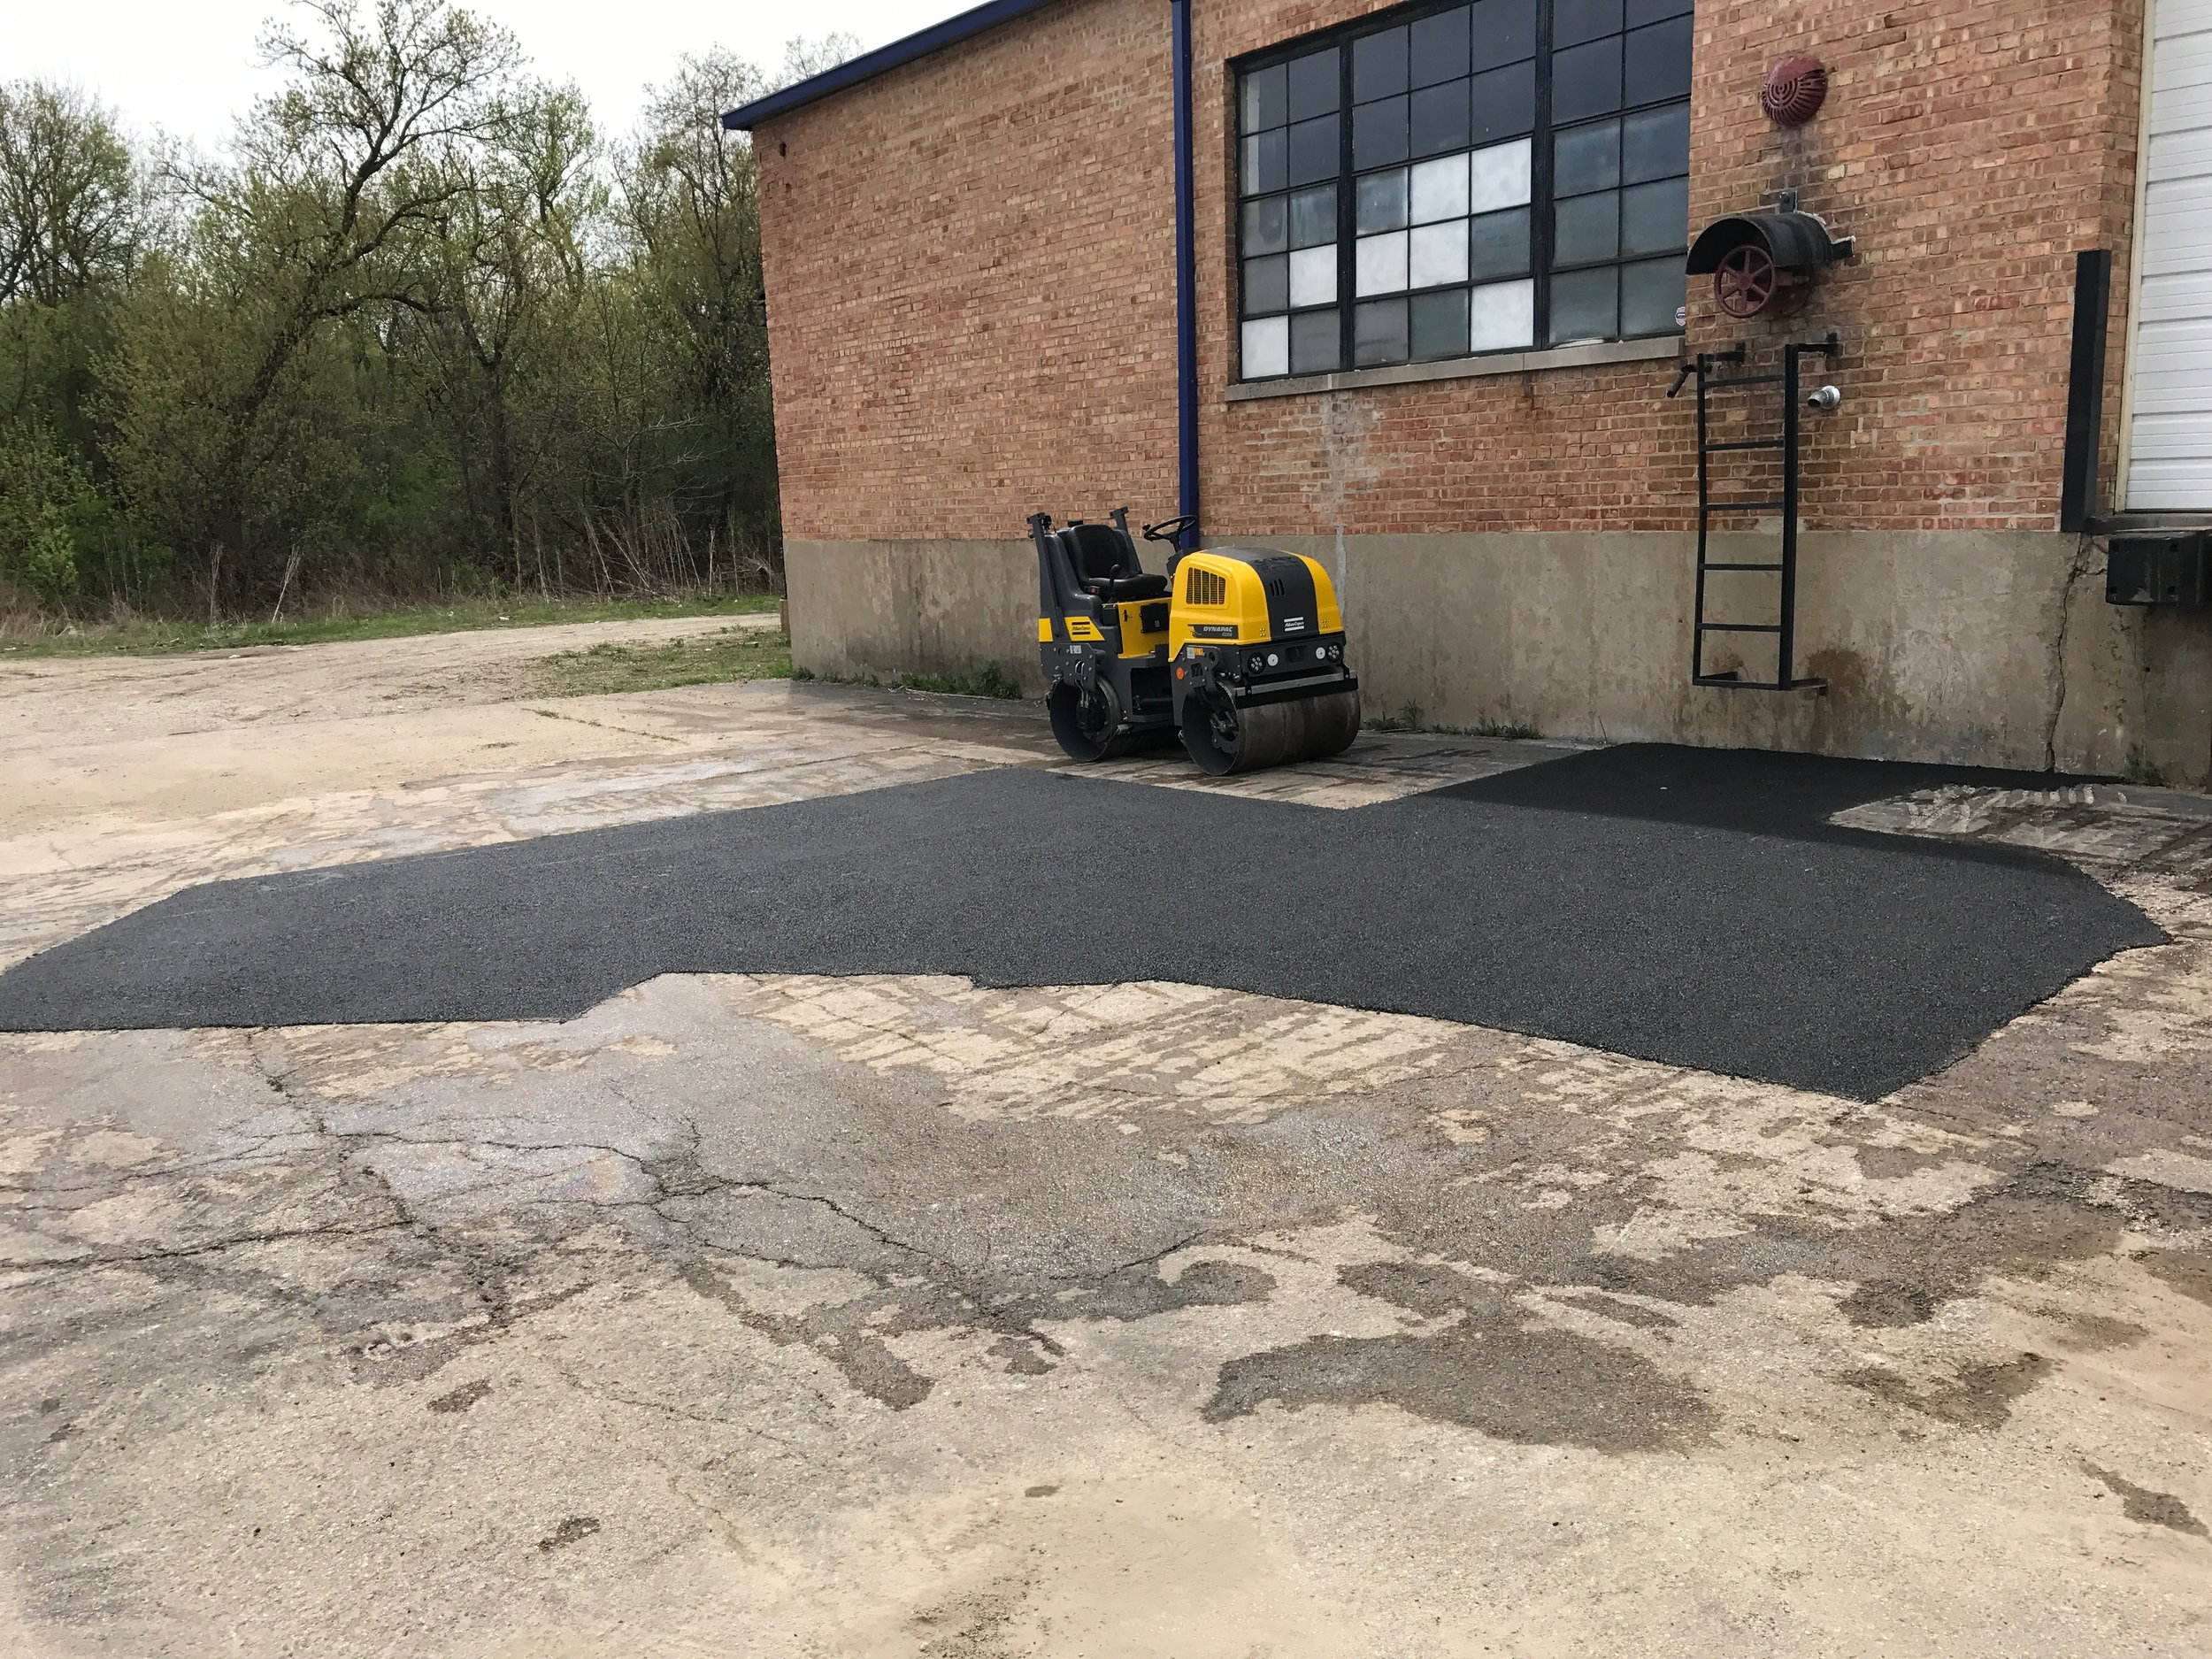 Parking lot patch work.